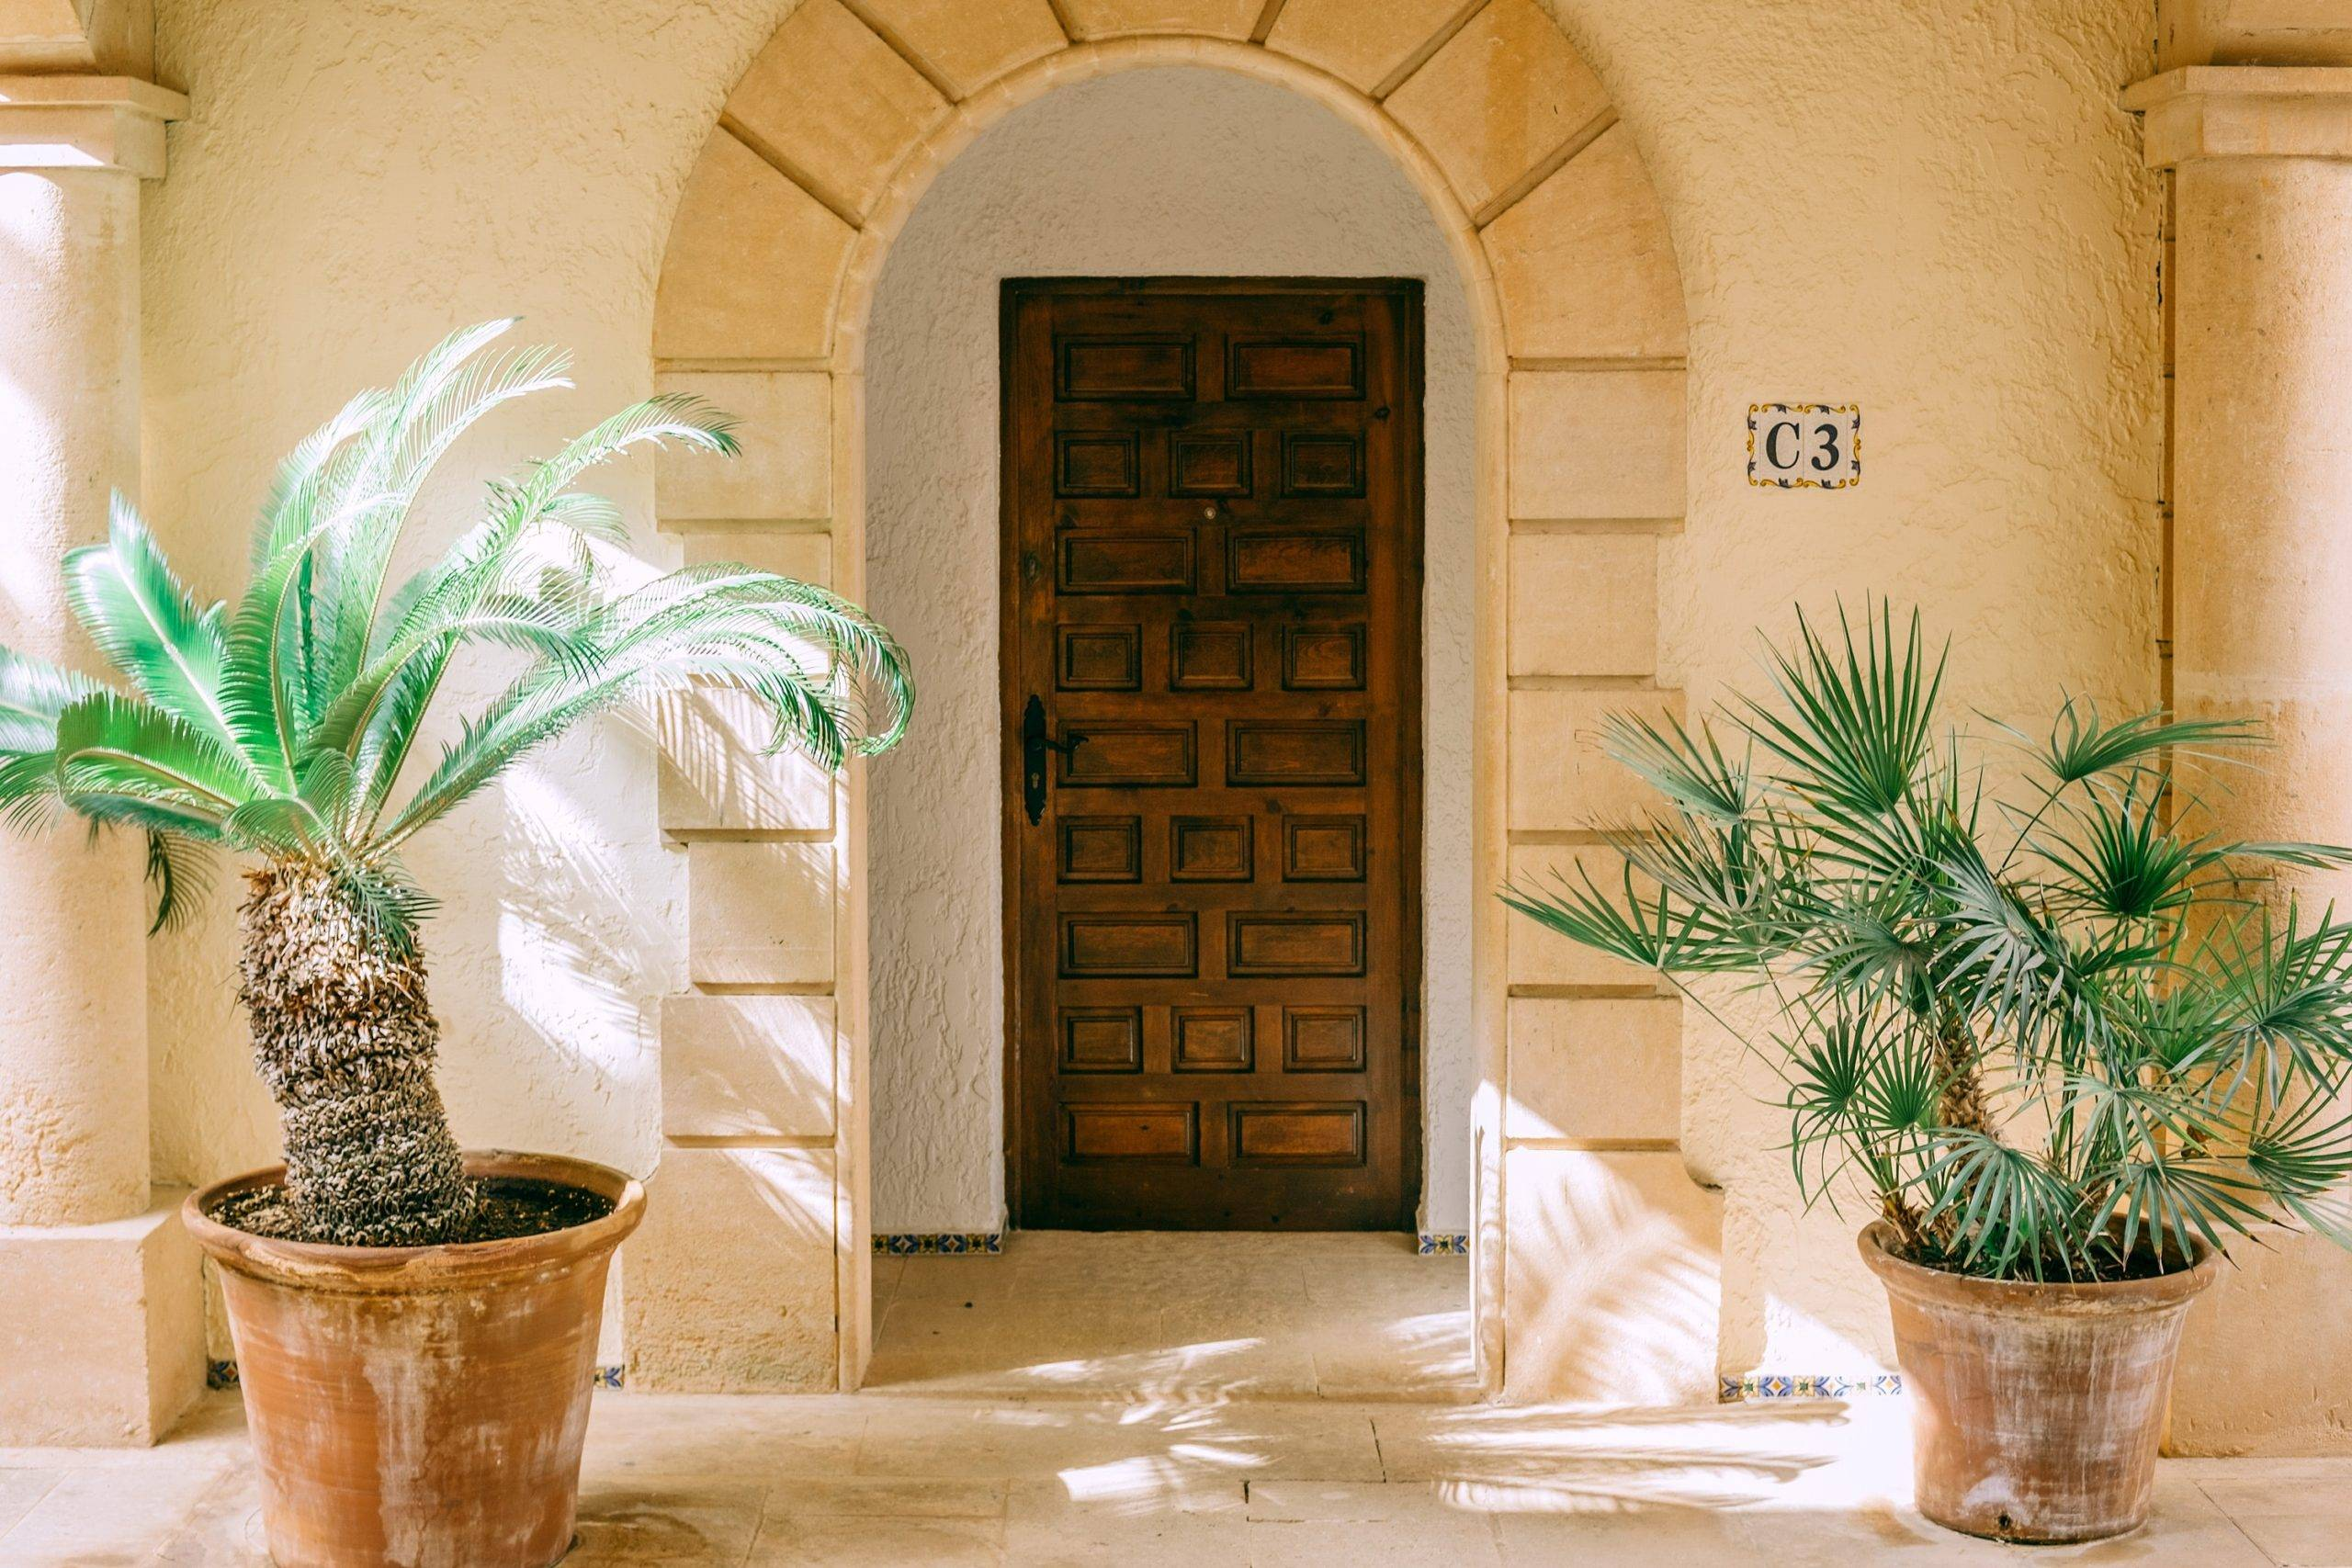 Two large potted plants beside archway door